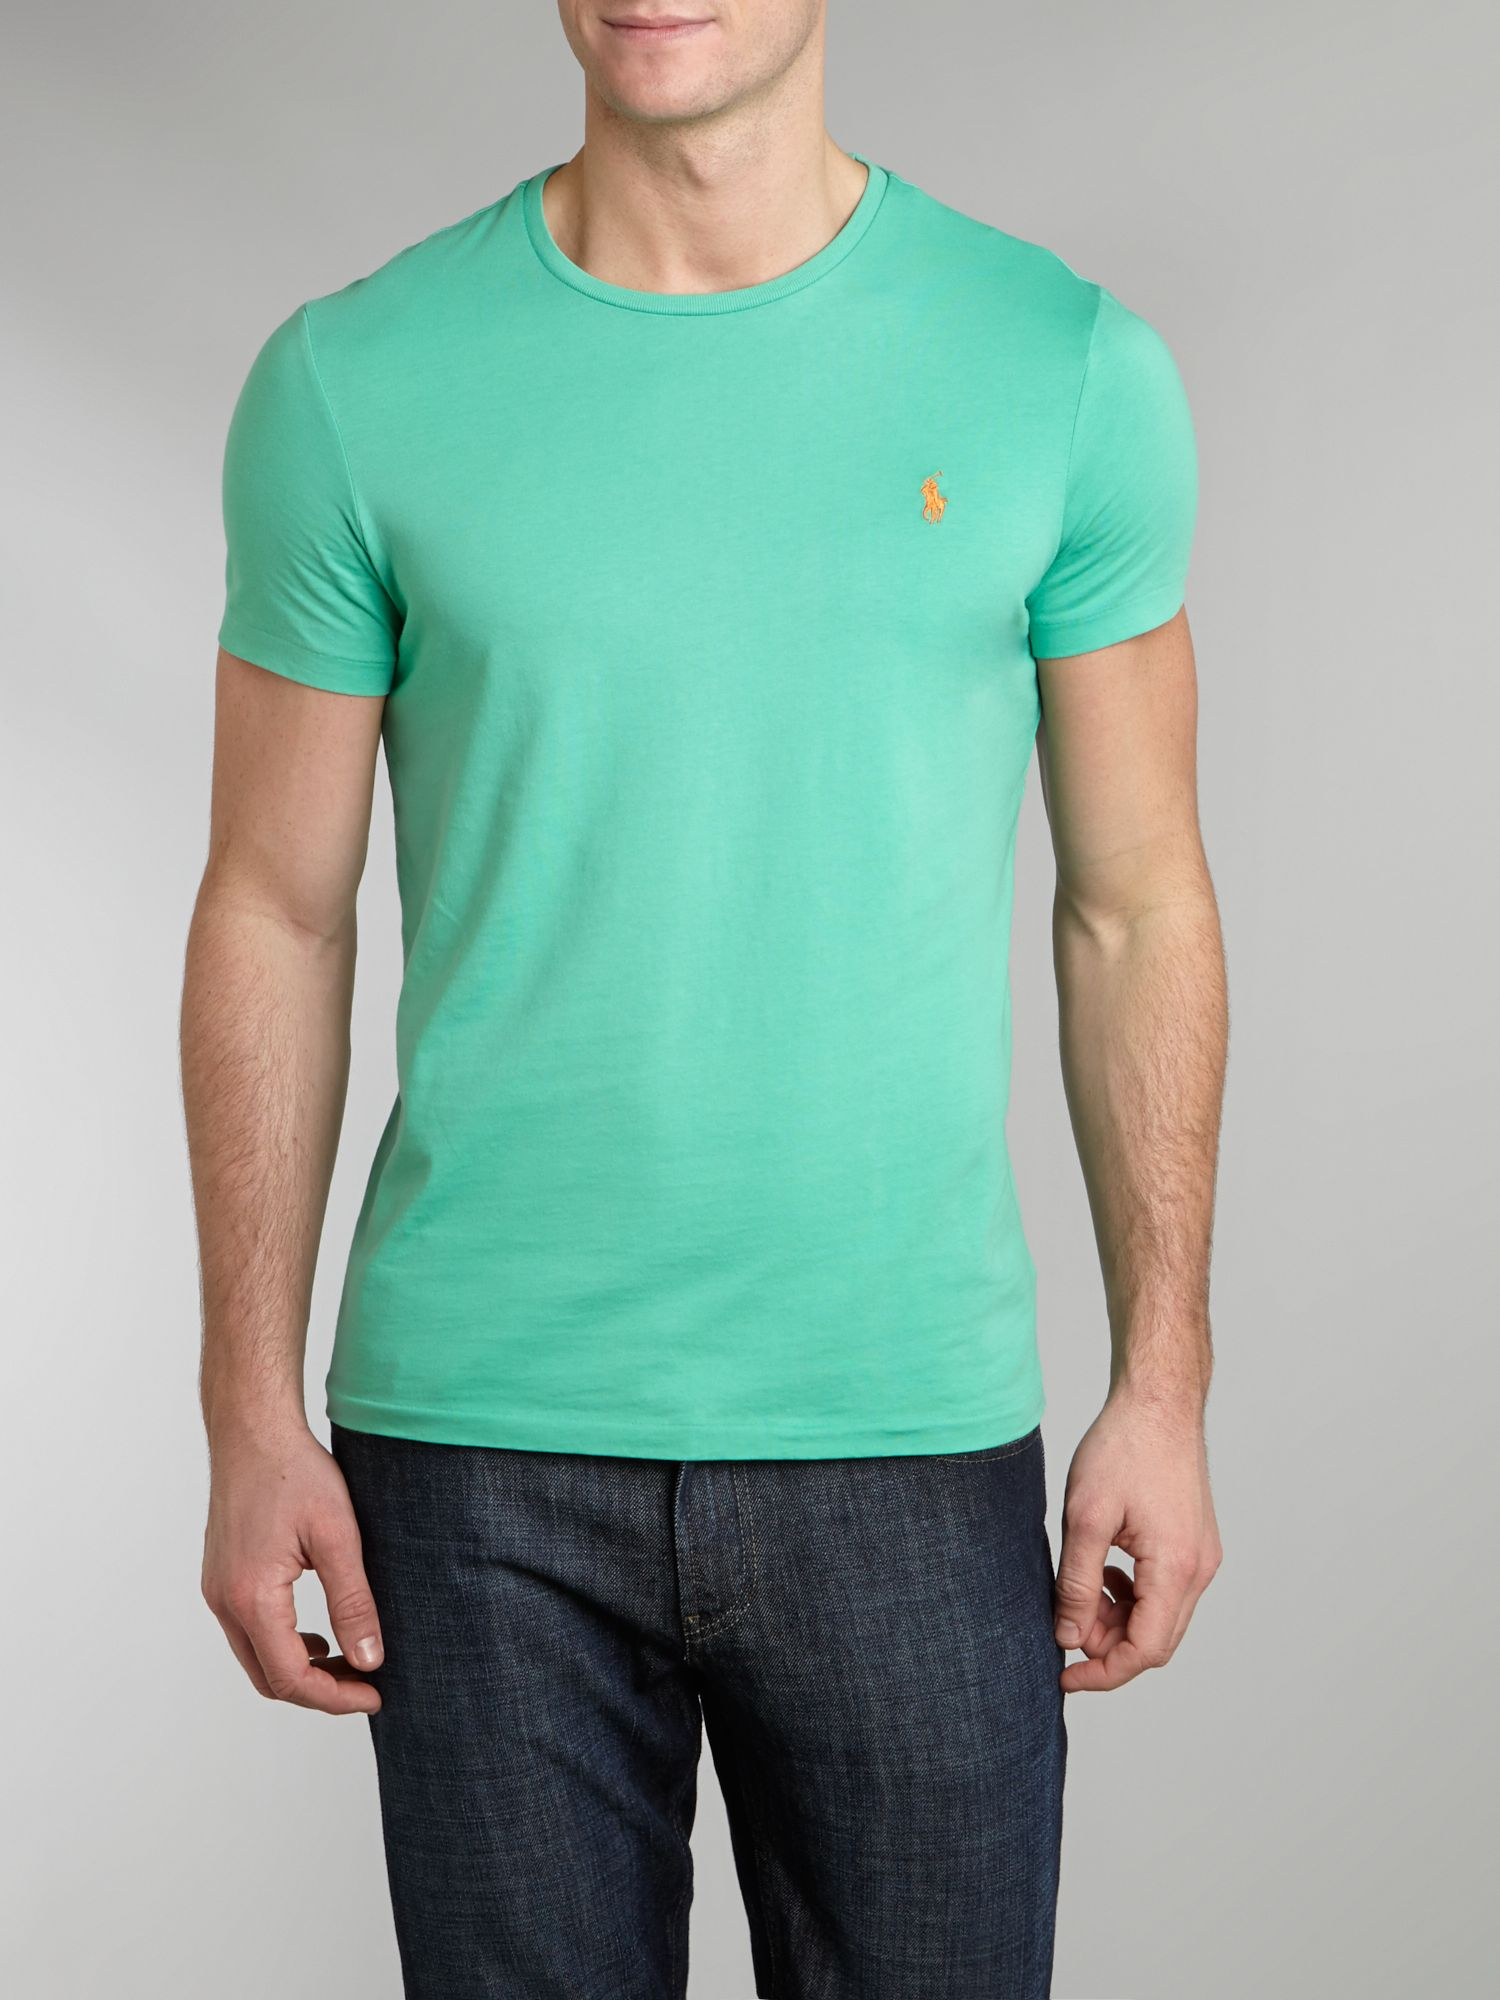 Classic custom fit crew neck t-shirt